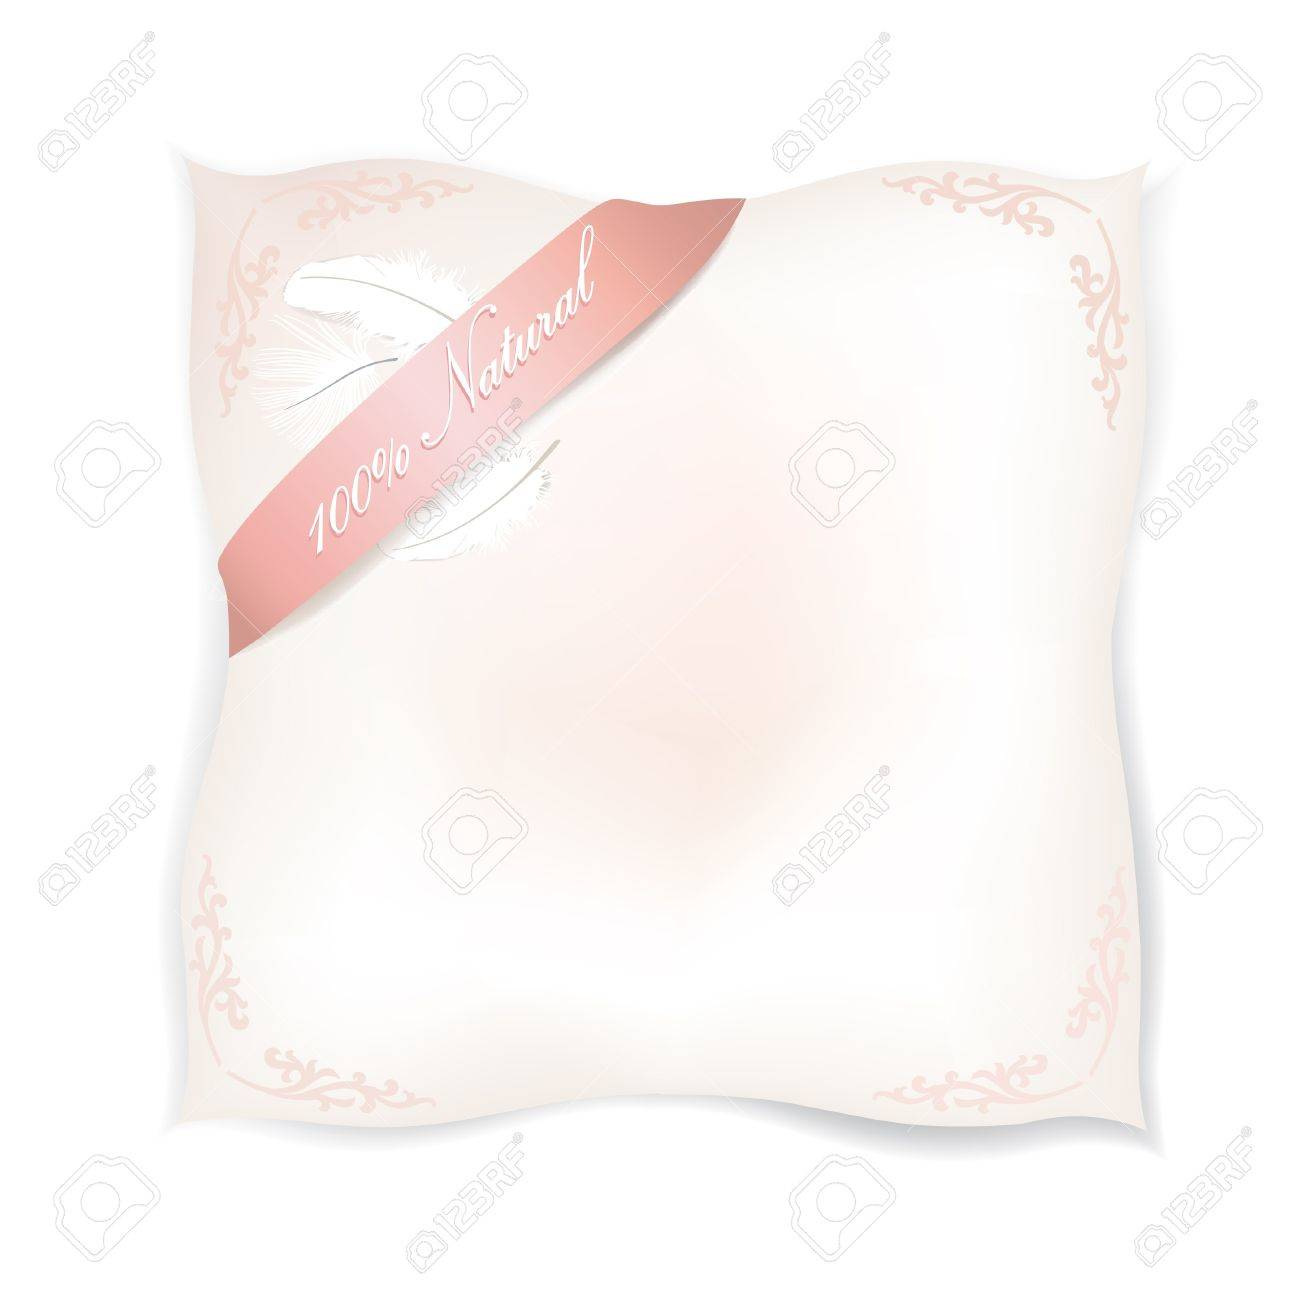 White pillow isolated  Natural product label  Feather Vector illustration Stock Vector - 20912590